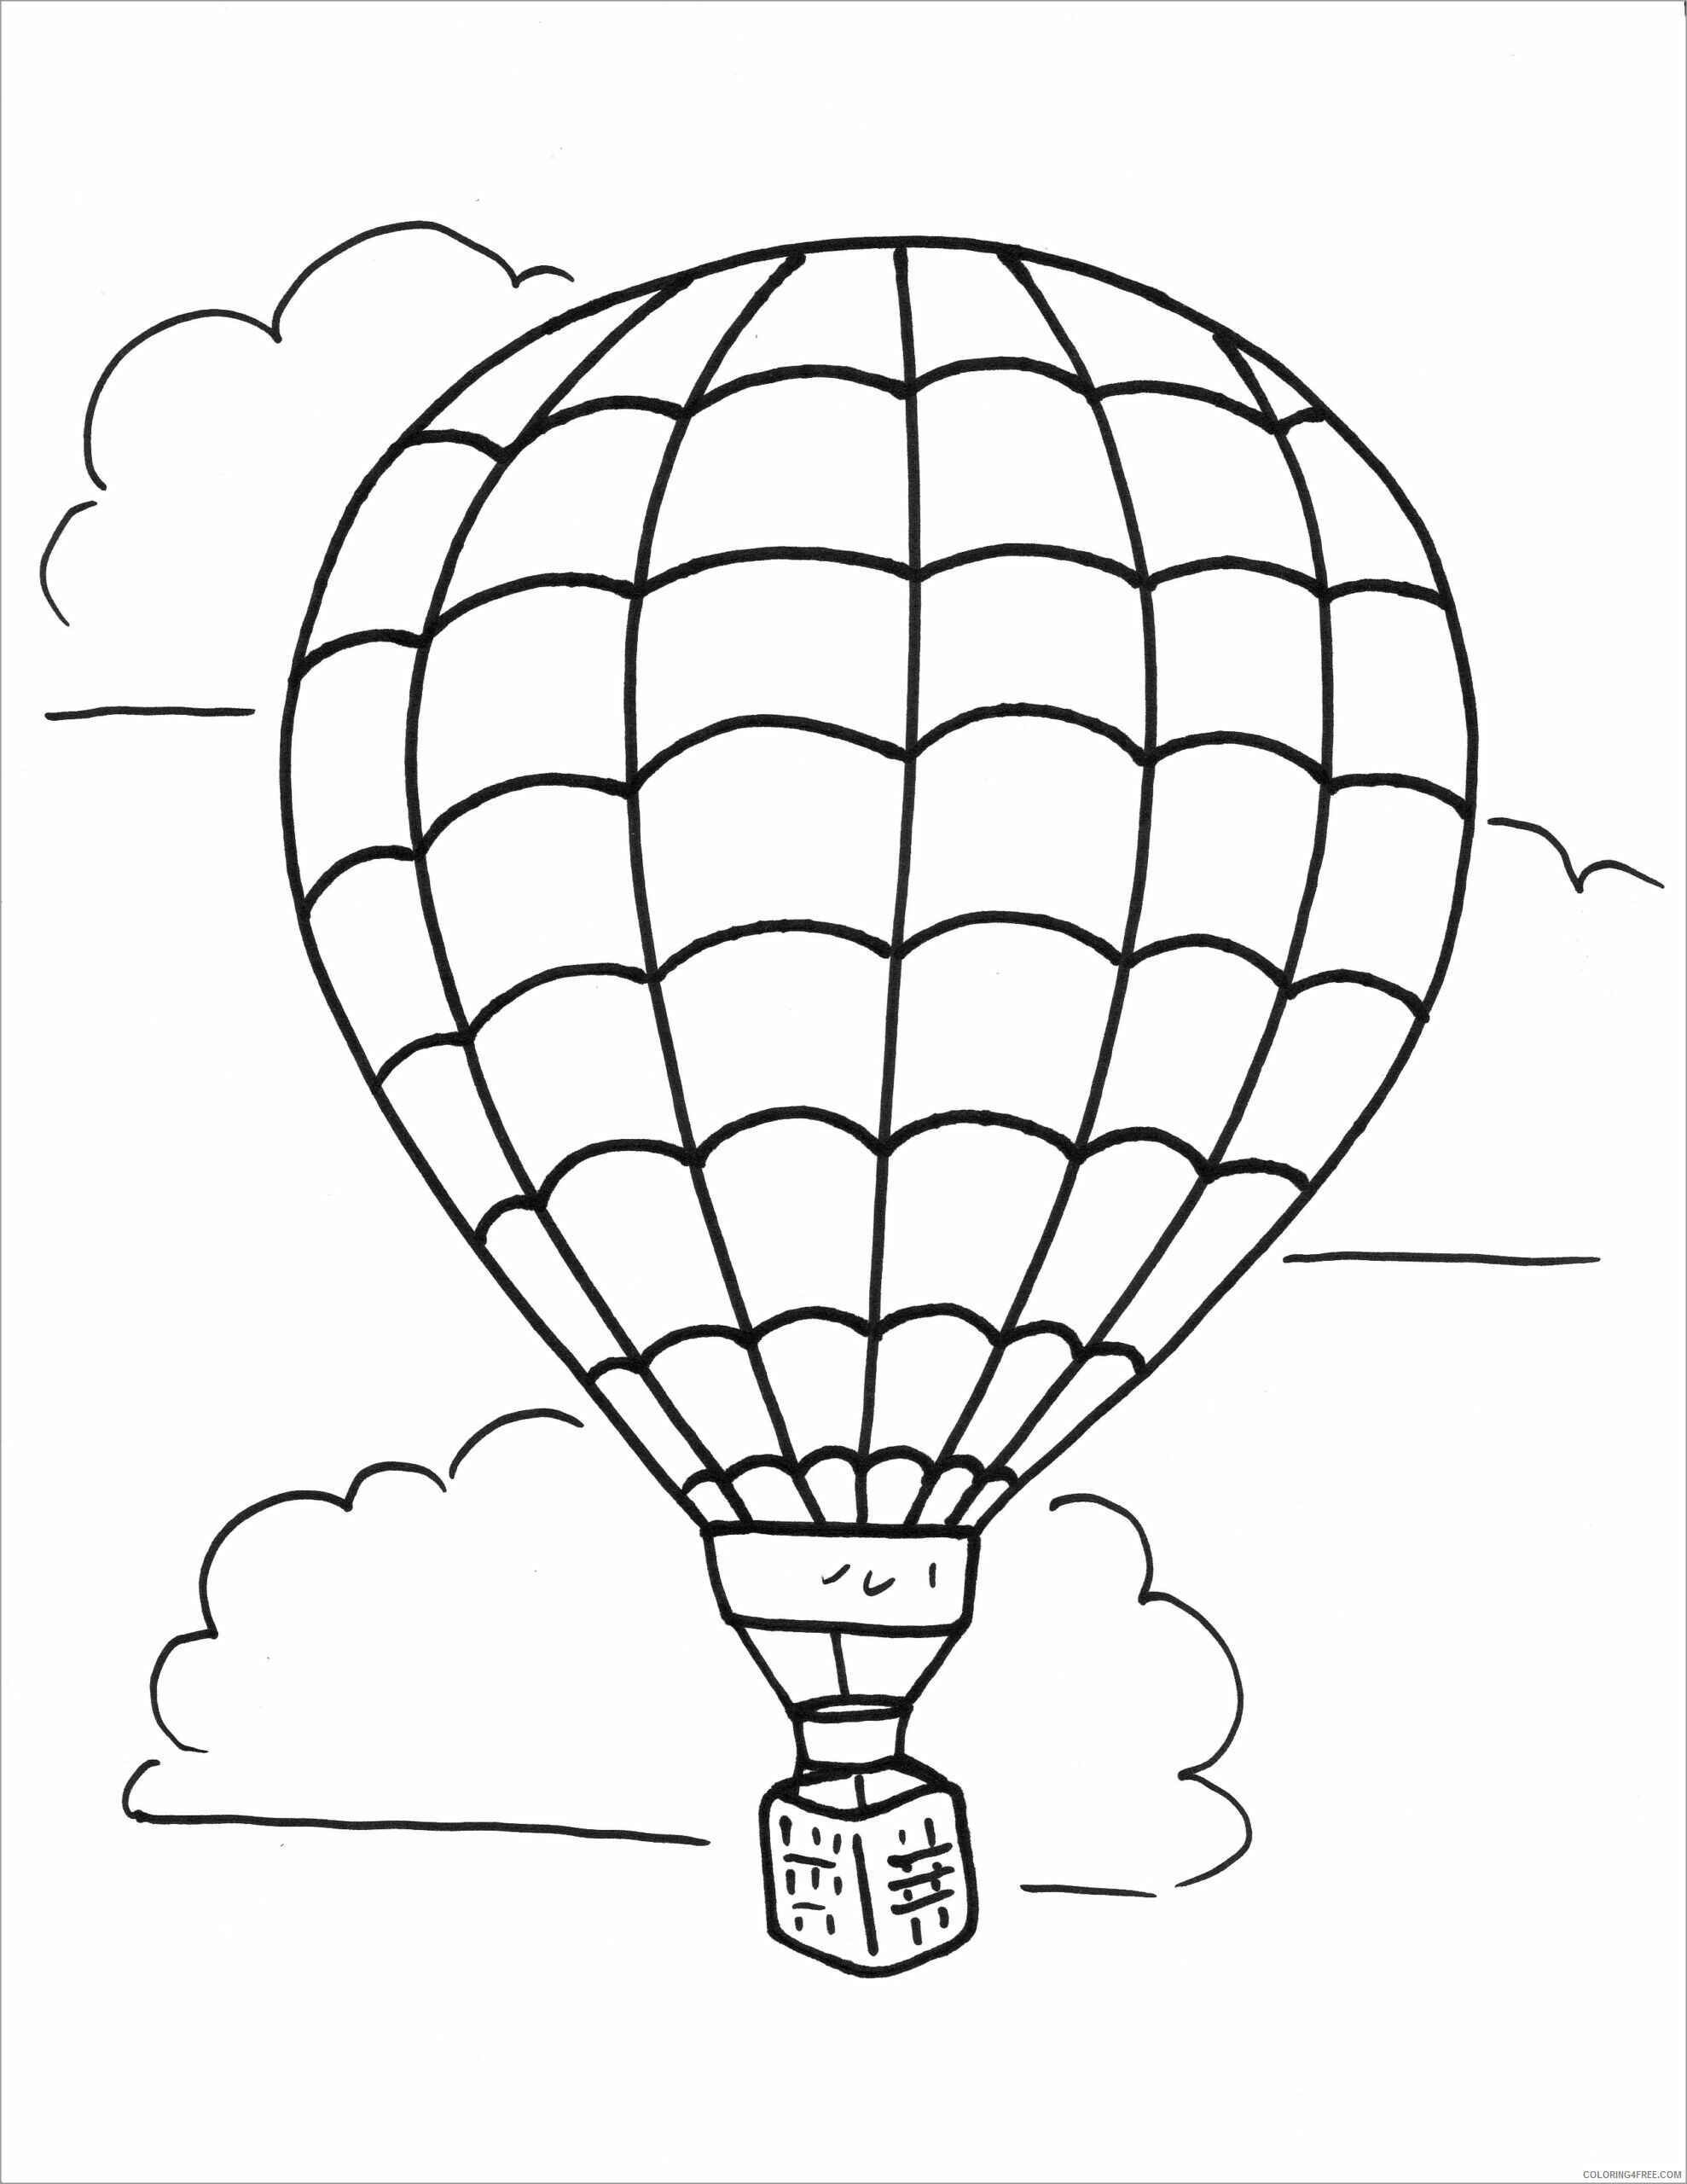 Hot Air Balloon Coloring Pages for Kids hot air balloon Printable 2021 335 Coloring4free